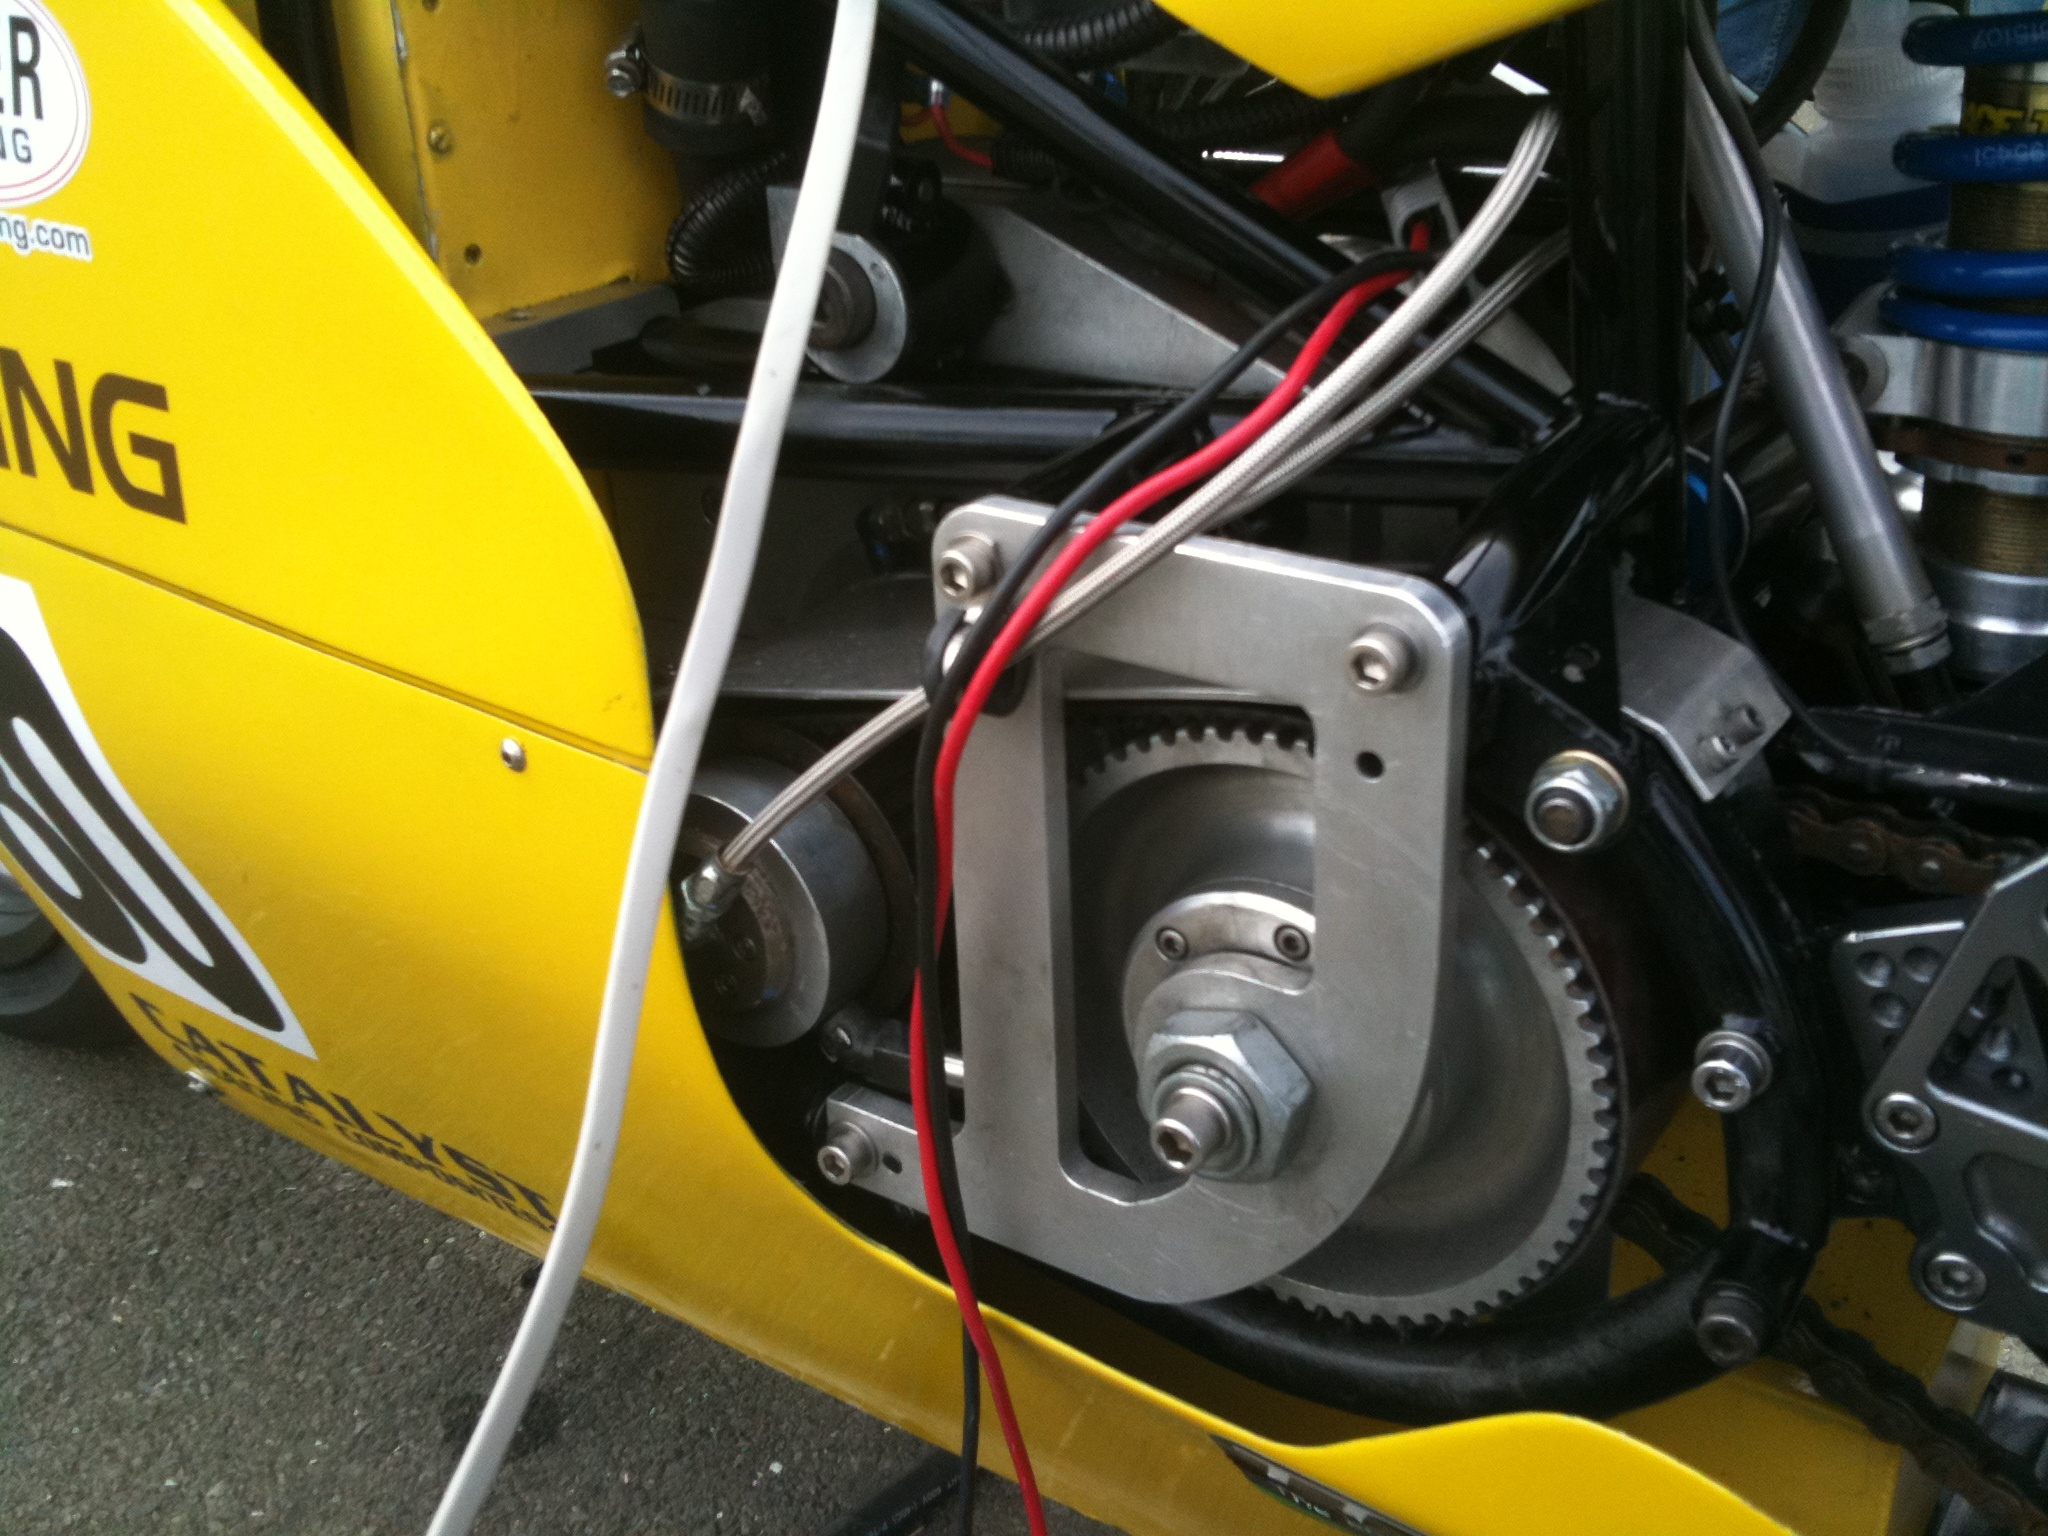 The Electric Garage Lightning Motors Ev1 Chronicles History Of Motorcycle Engine Heat Control And Liquid Cooling Thunder Dude